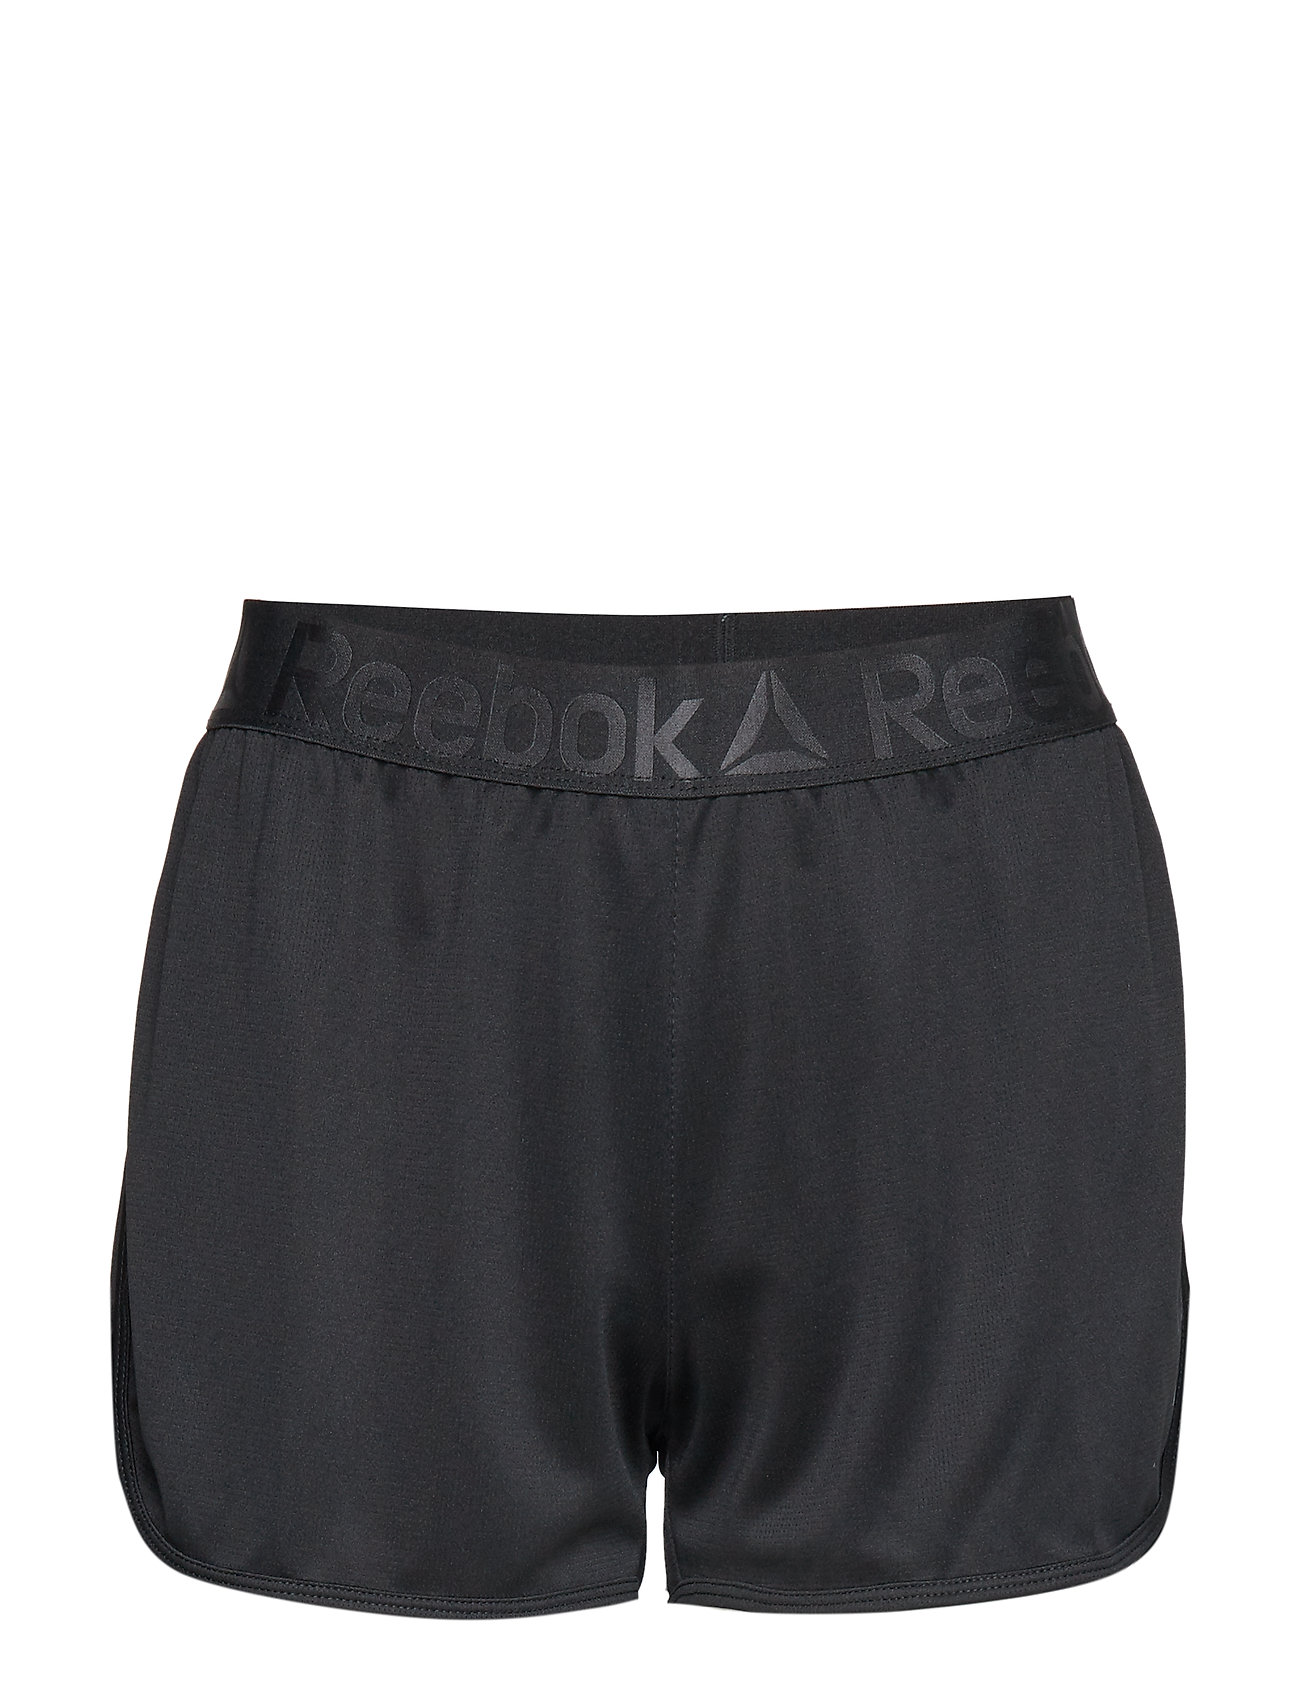 Reebok Performance WOR EASY SHORT - BLACK